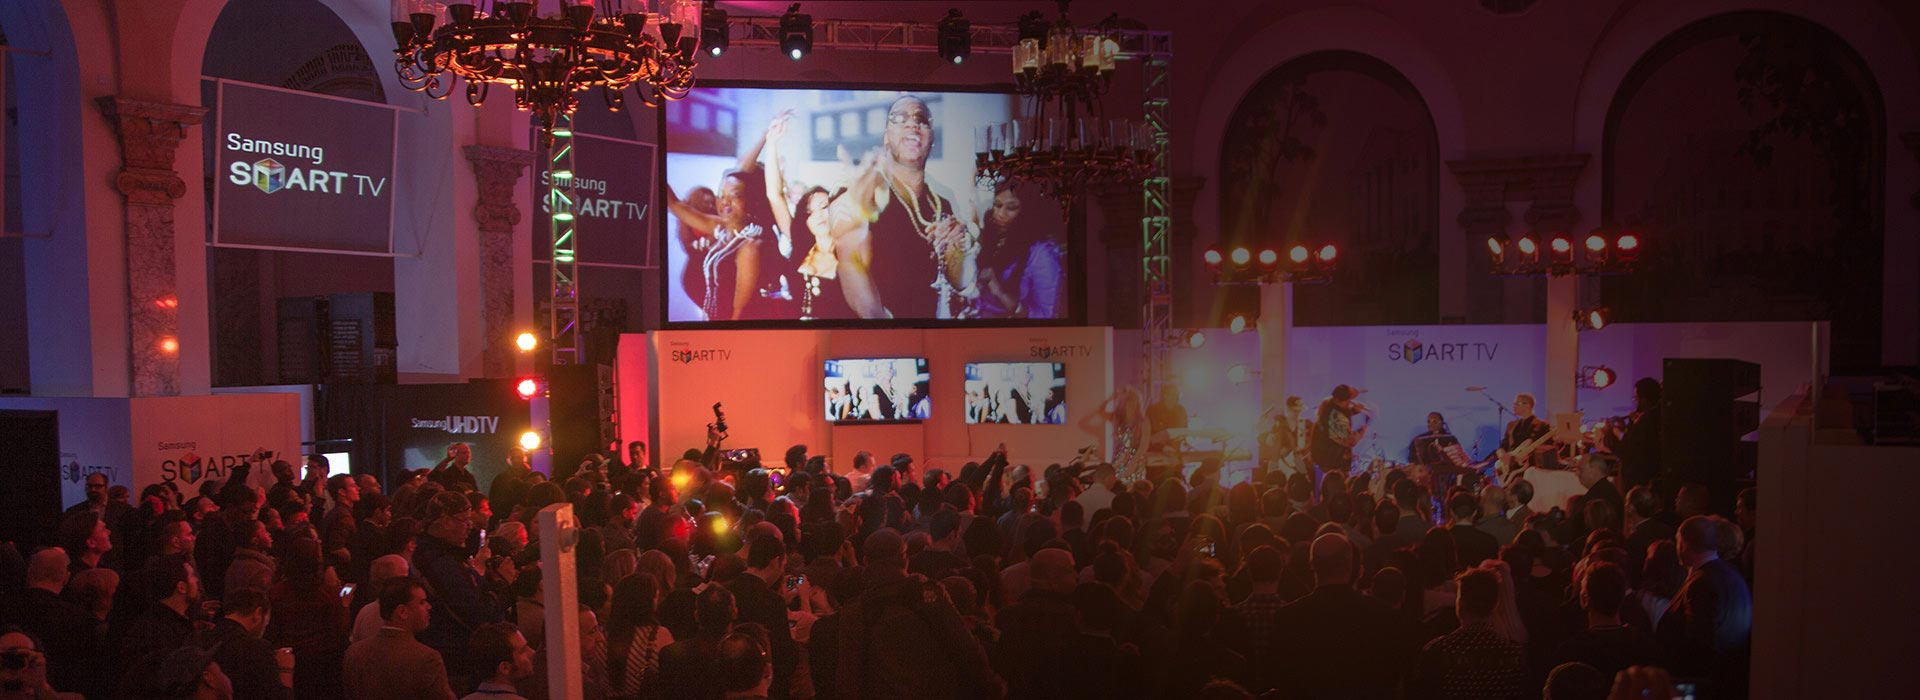 Custom Staging and Musical Entertainment Performers at Samsung Smart TV event